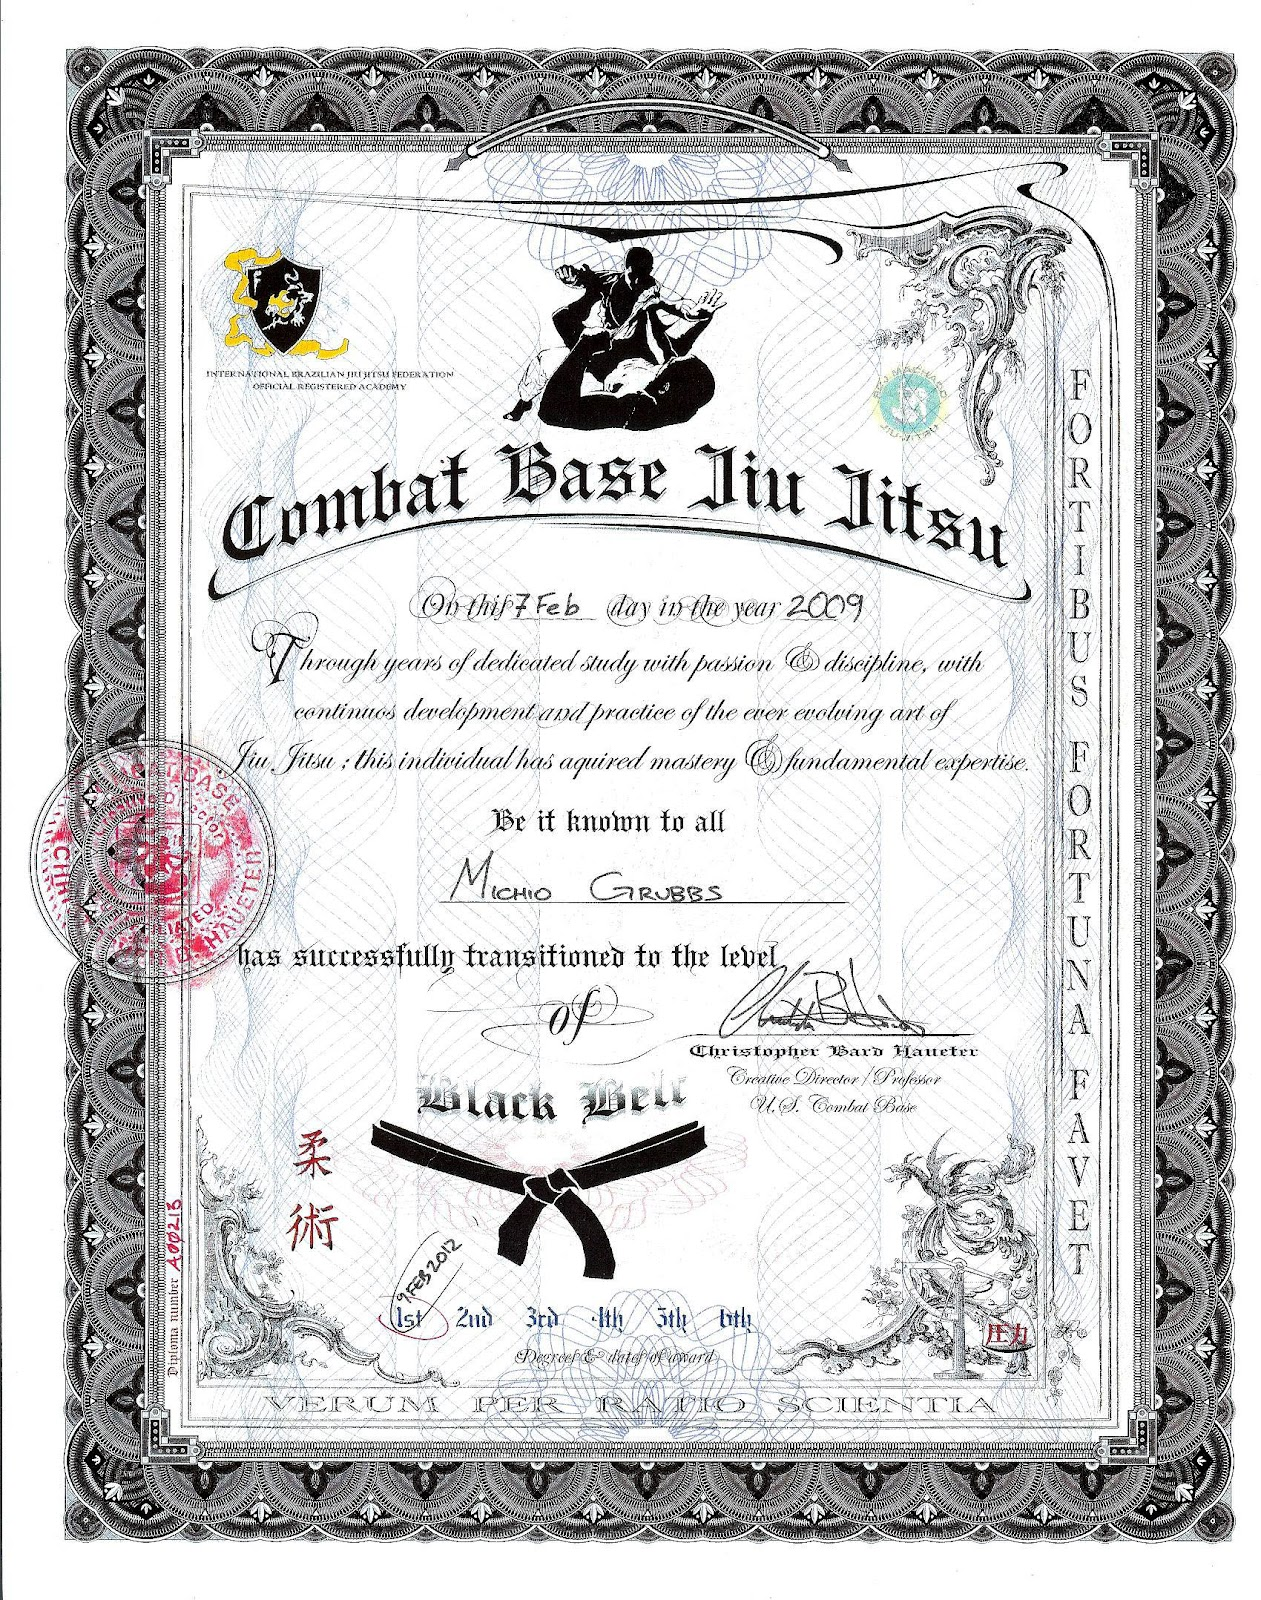 Excel jiu jitsu mma fitness march 2012 for Black belt certificate template